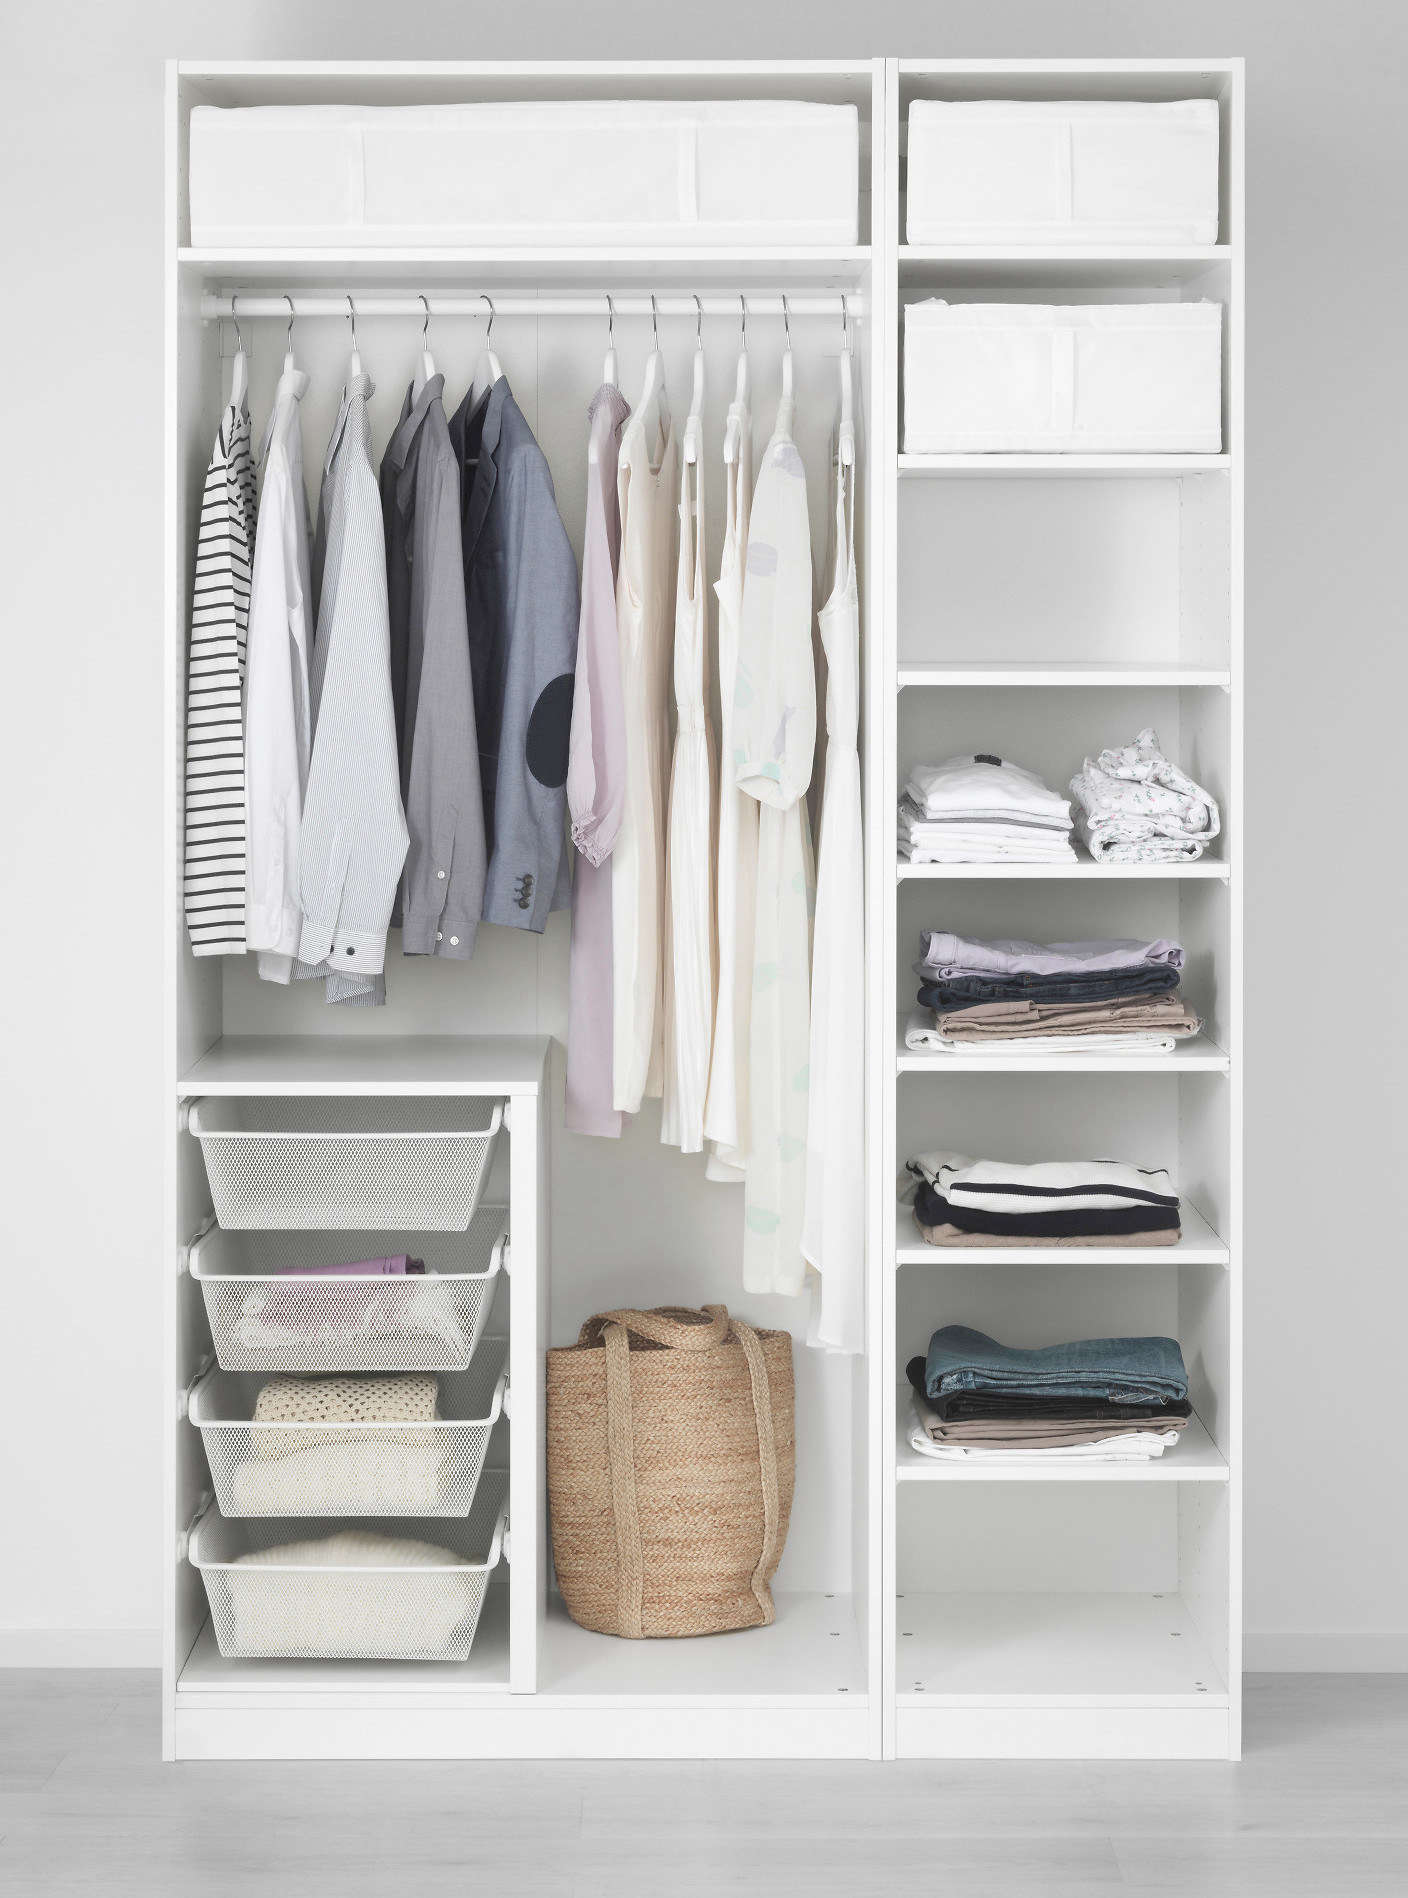 Ikea System 10 Best Closet Systems According To Architects And Interior Designers